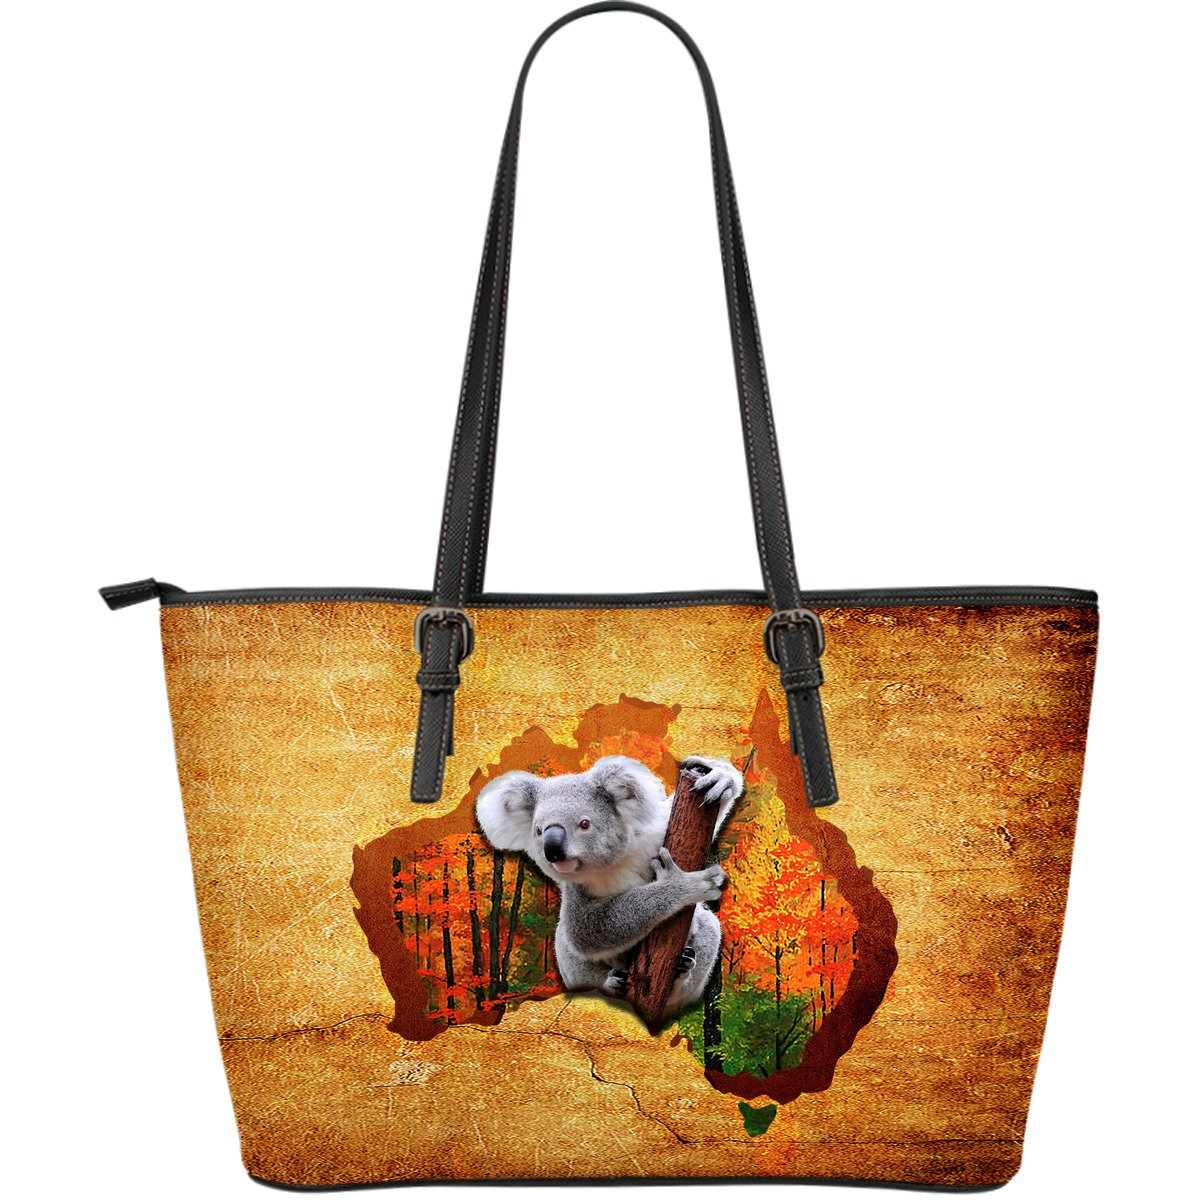 Koala And Map Leather Tote Bags NN6 1ST